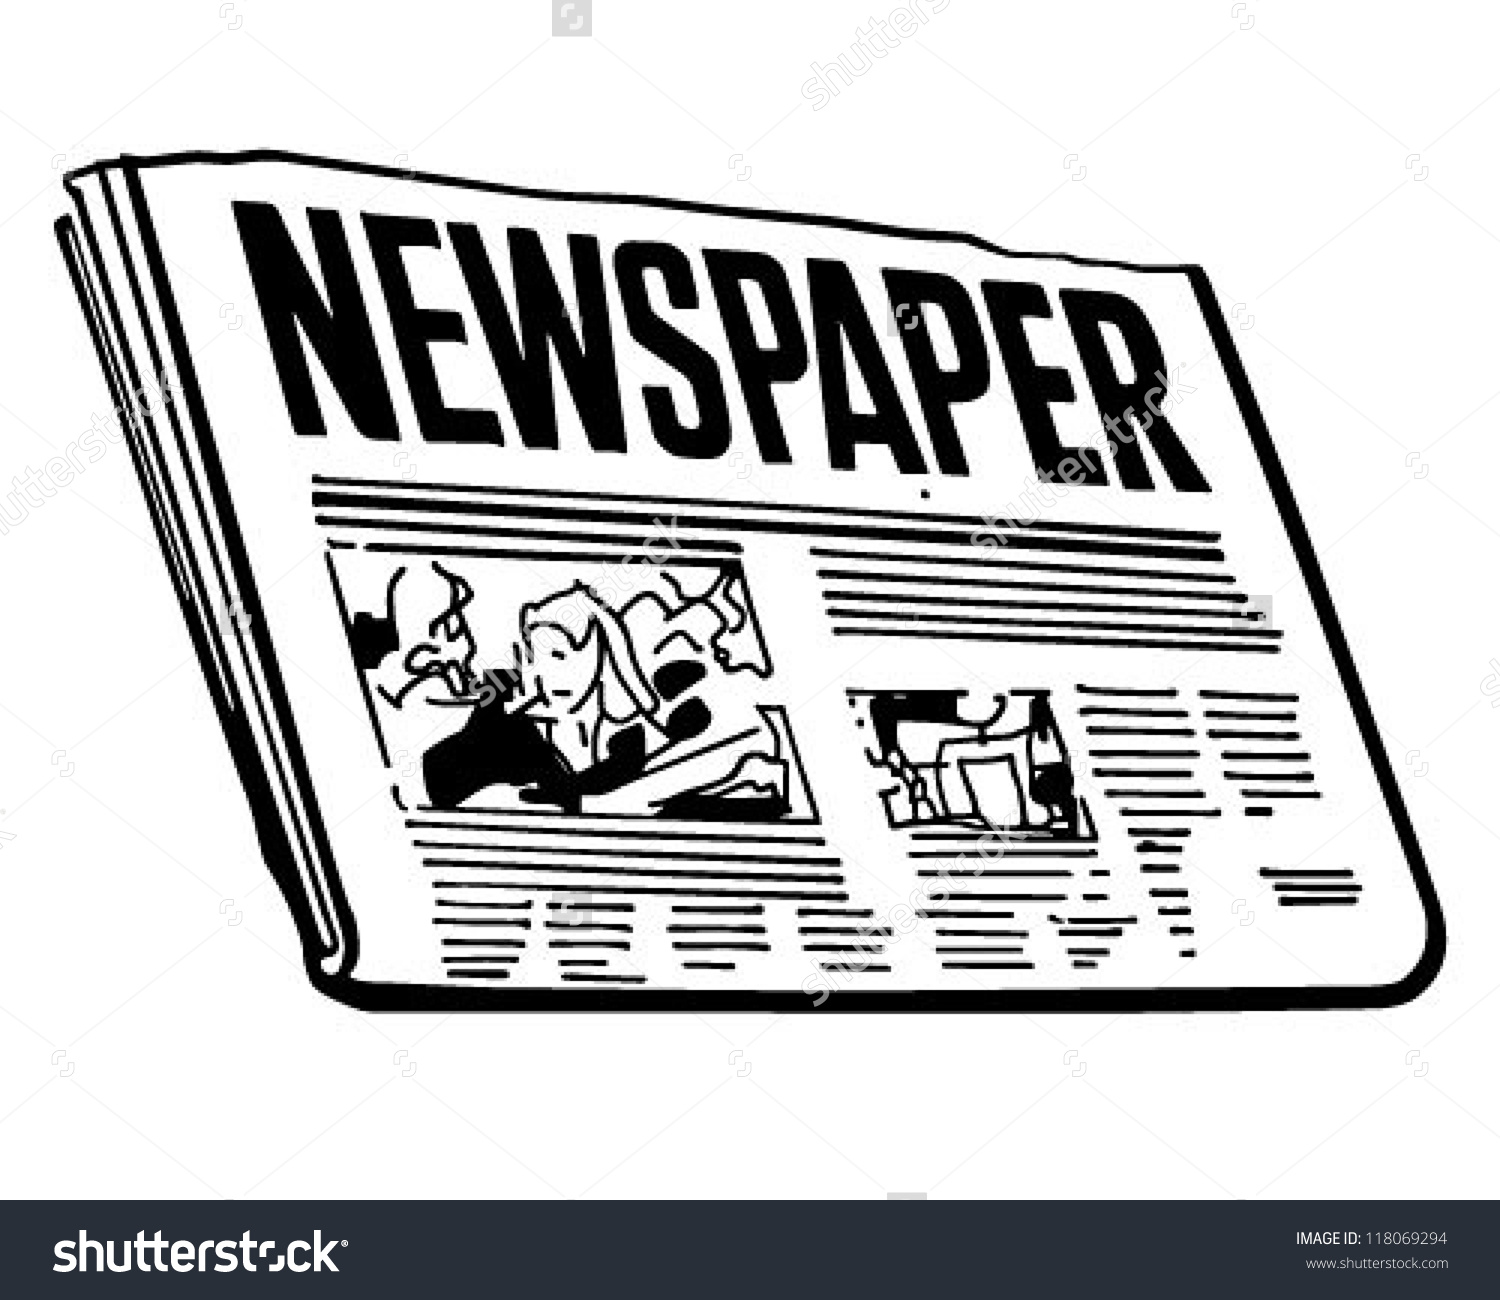 Newspapers clipart.